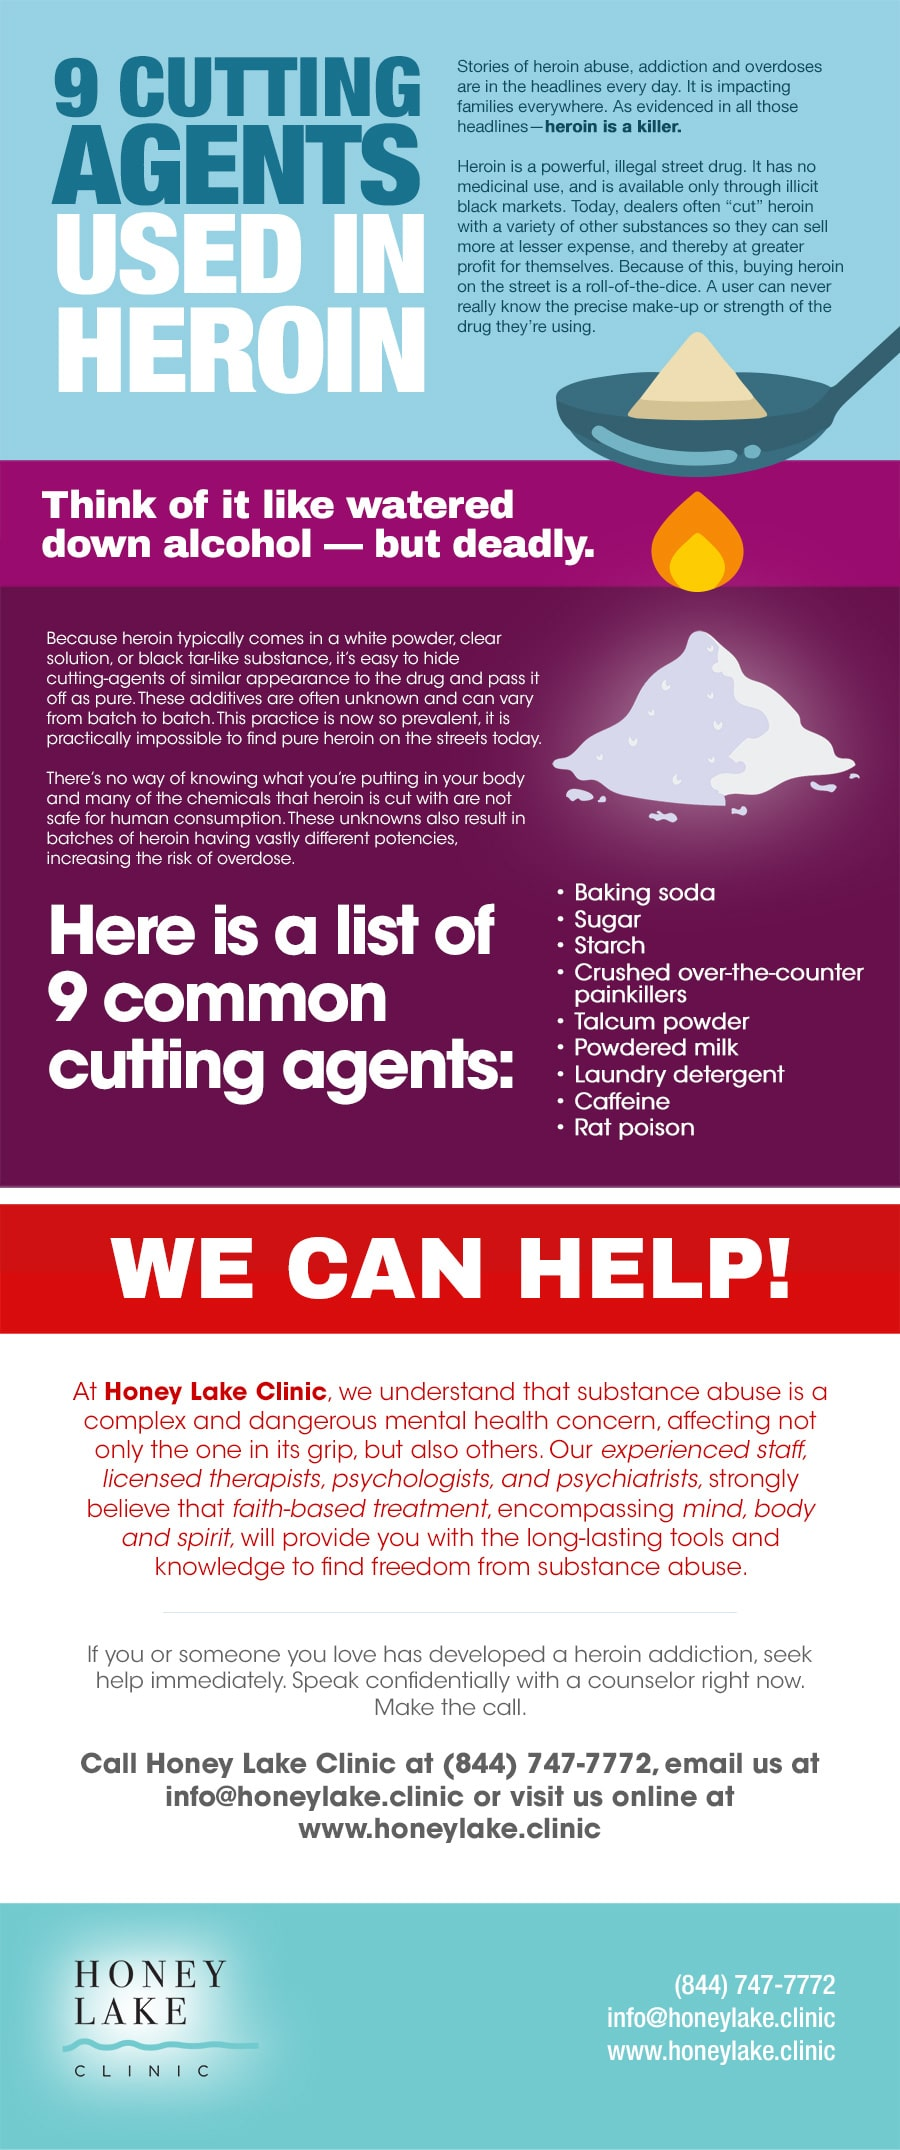 9 Cutting Agents Used in Heroin